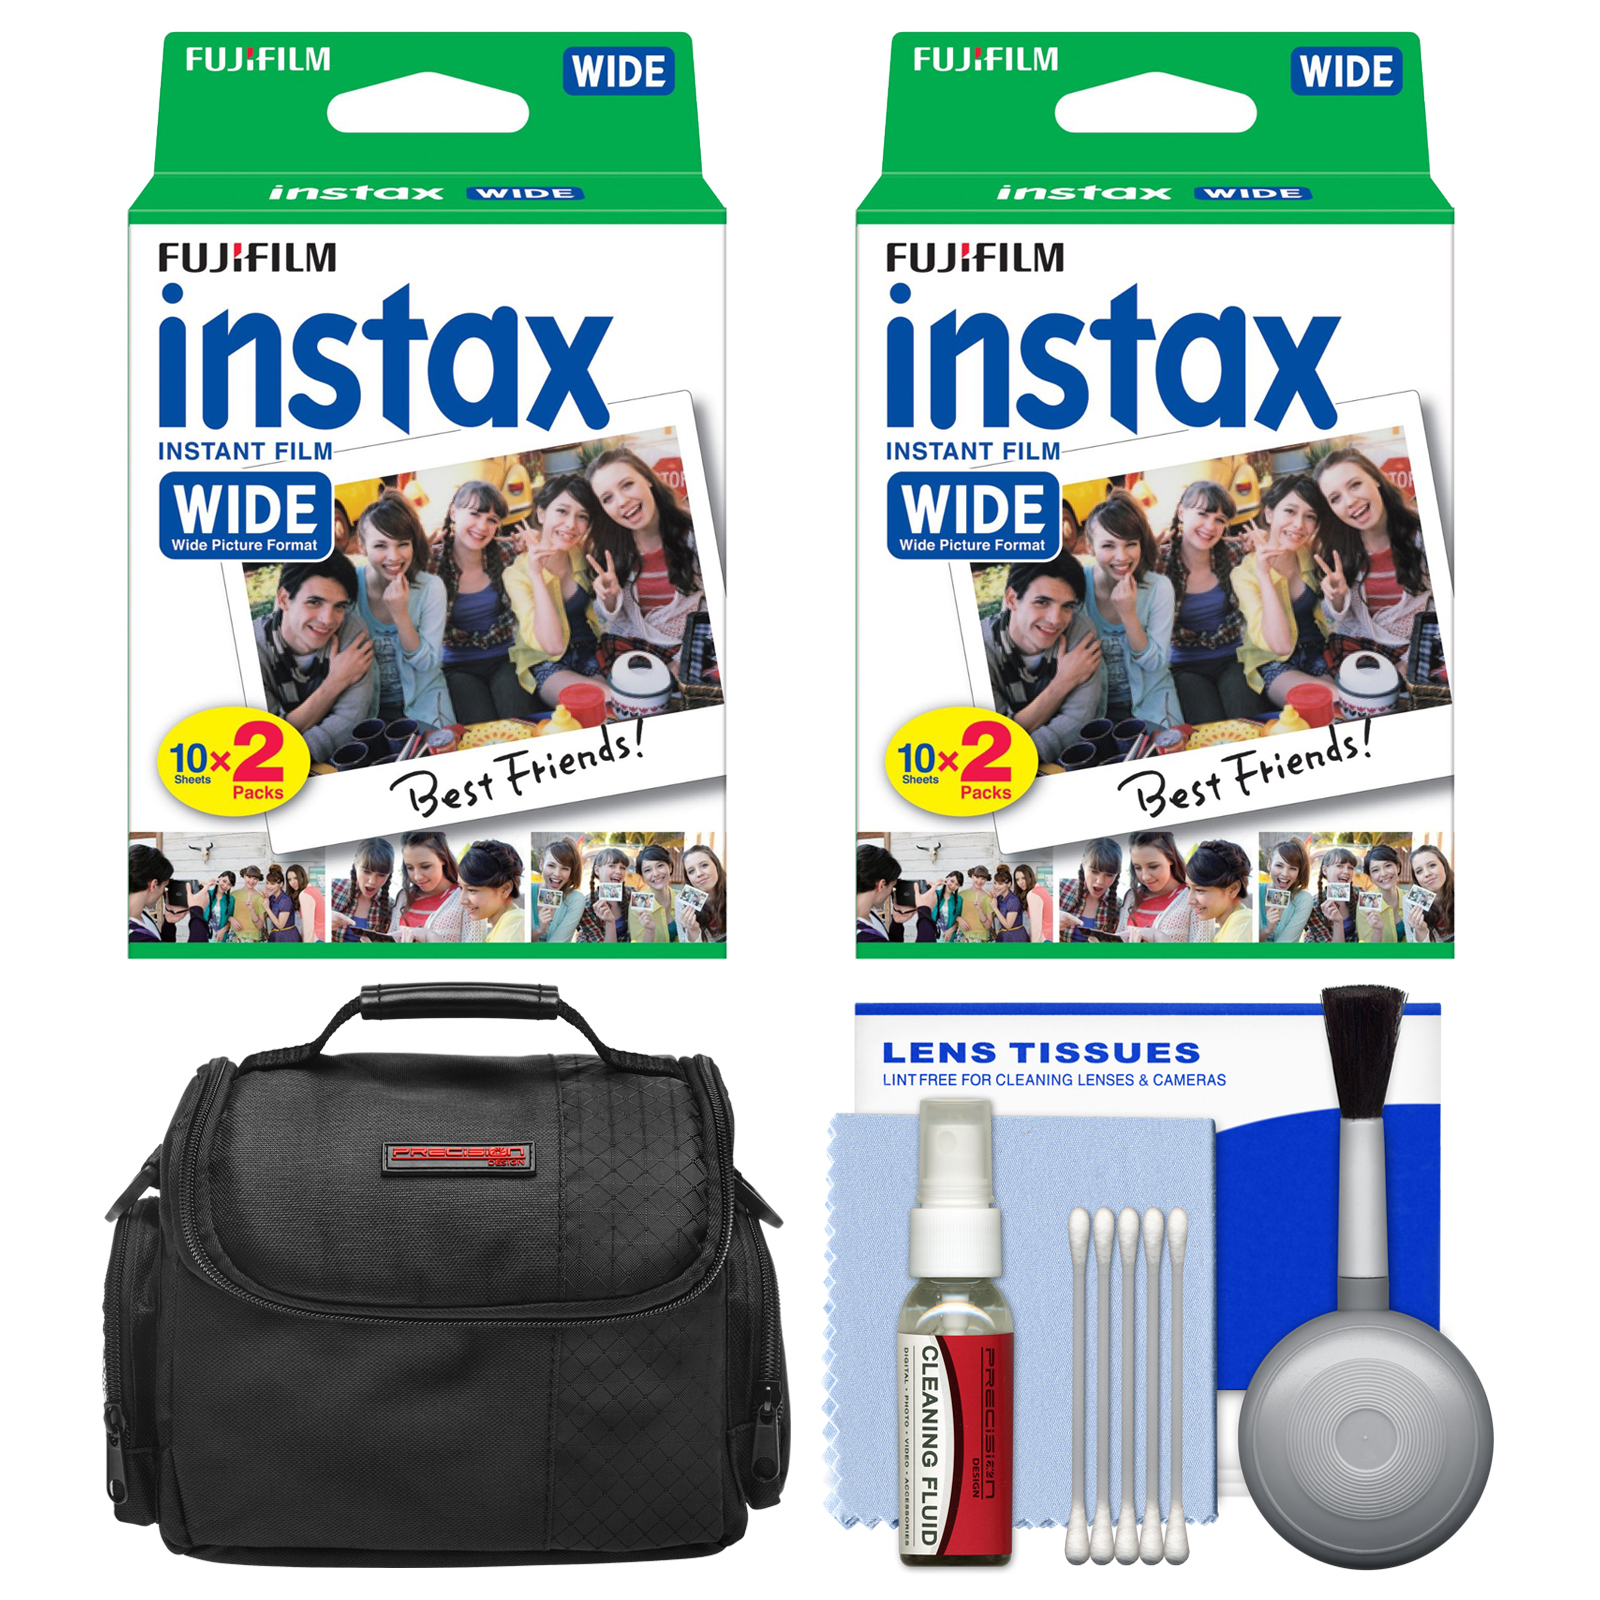 Essentials Bundle for Fujifilm Instax 210 & Wide 300 Instant Film Camera with 40 Wide Prints + Case + Cleaning Kit